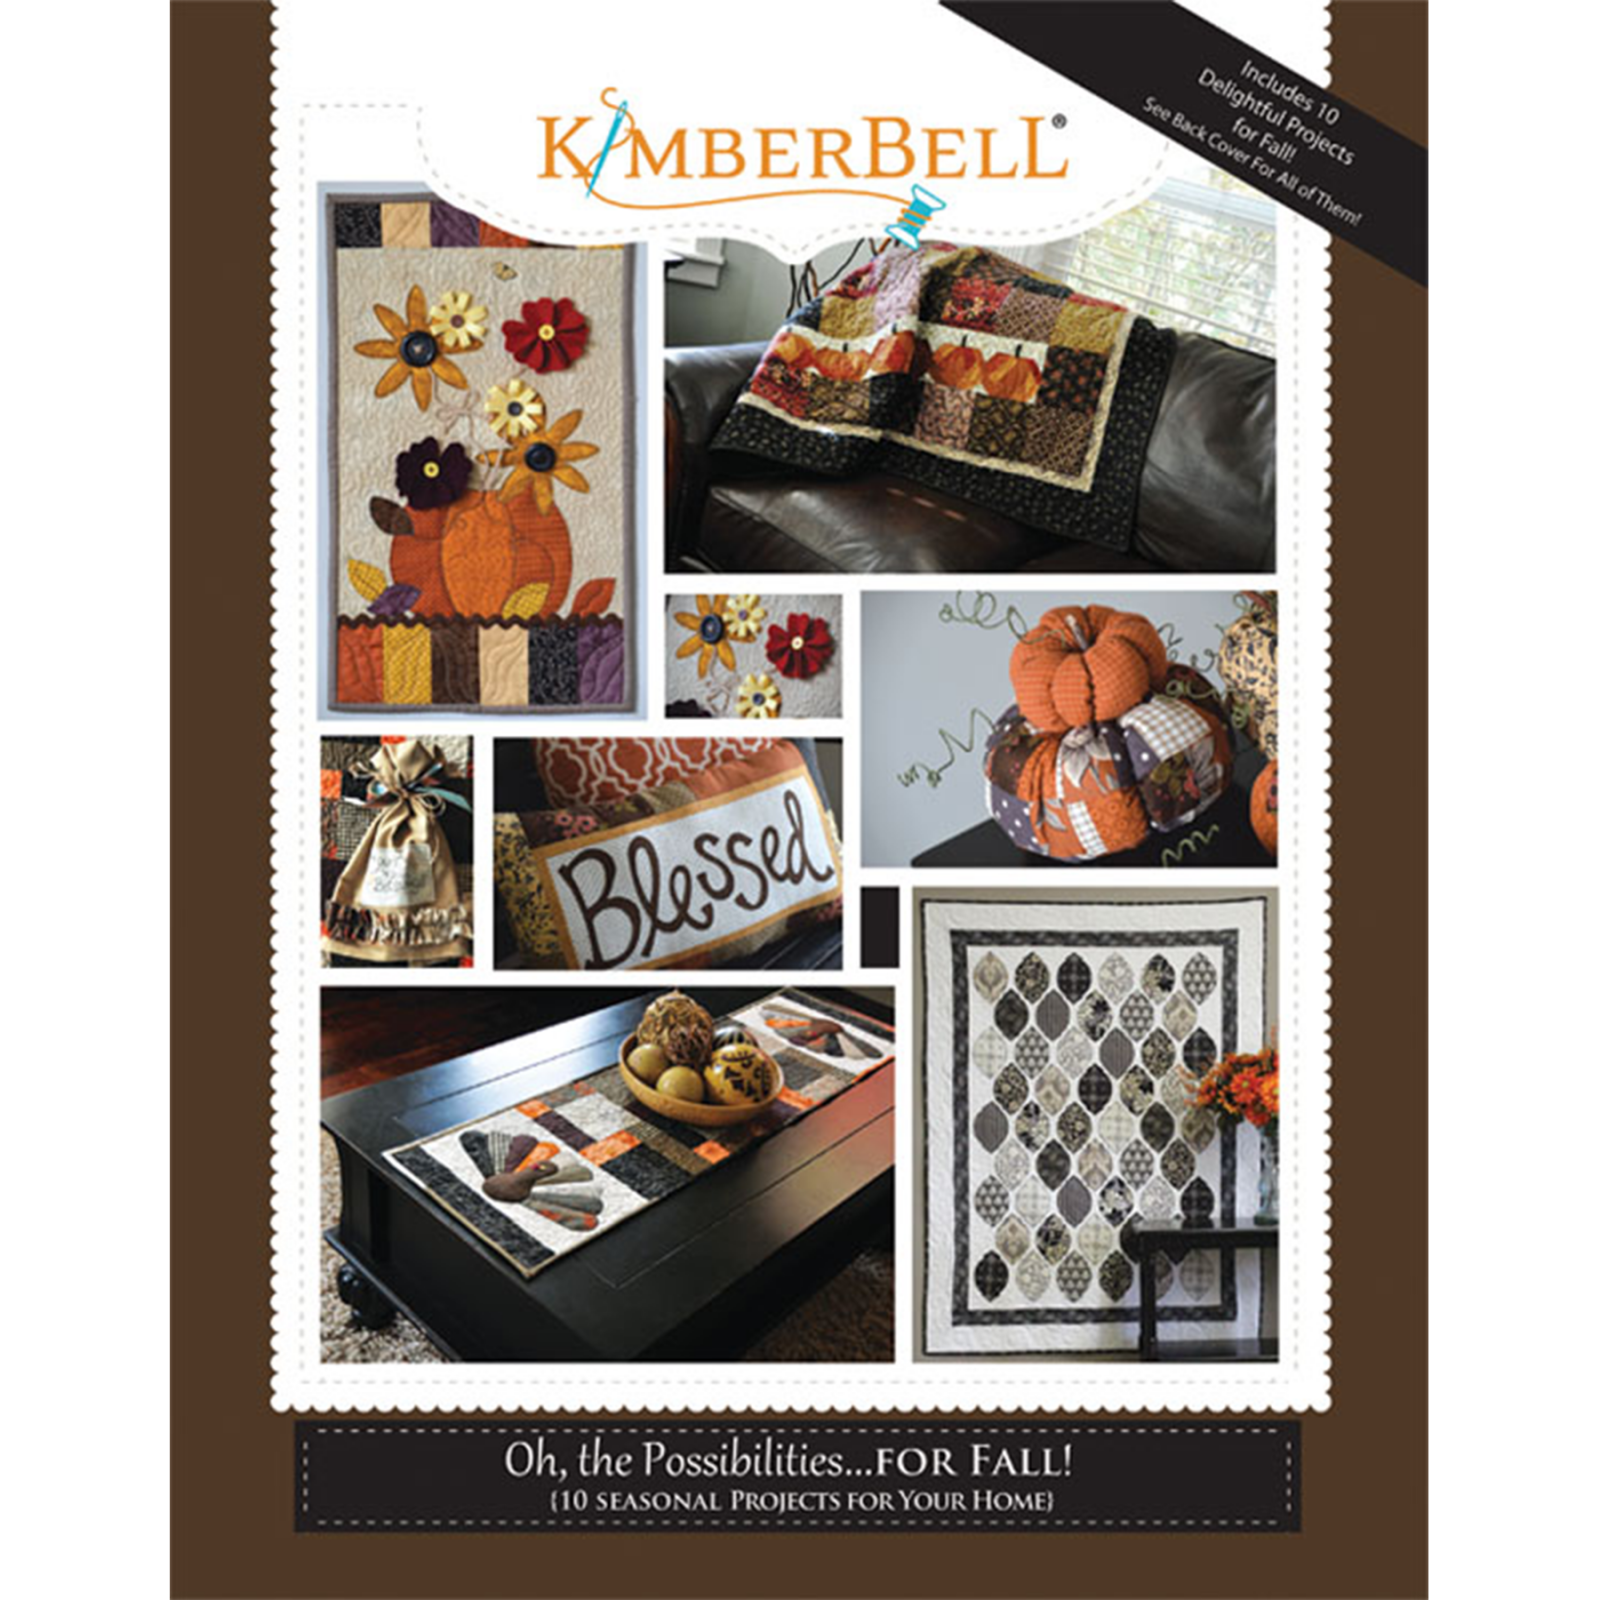 KIMBERBELL Oh, the Possibilities...For Fall!